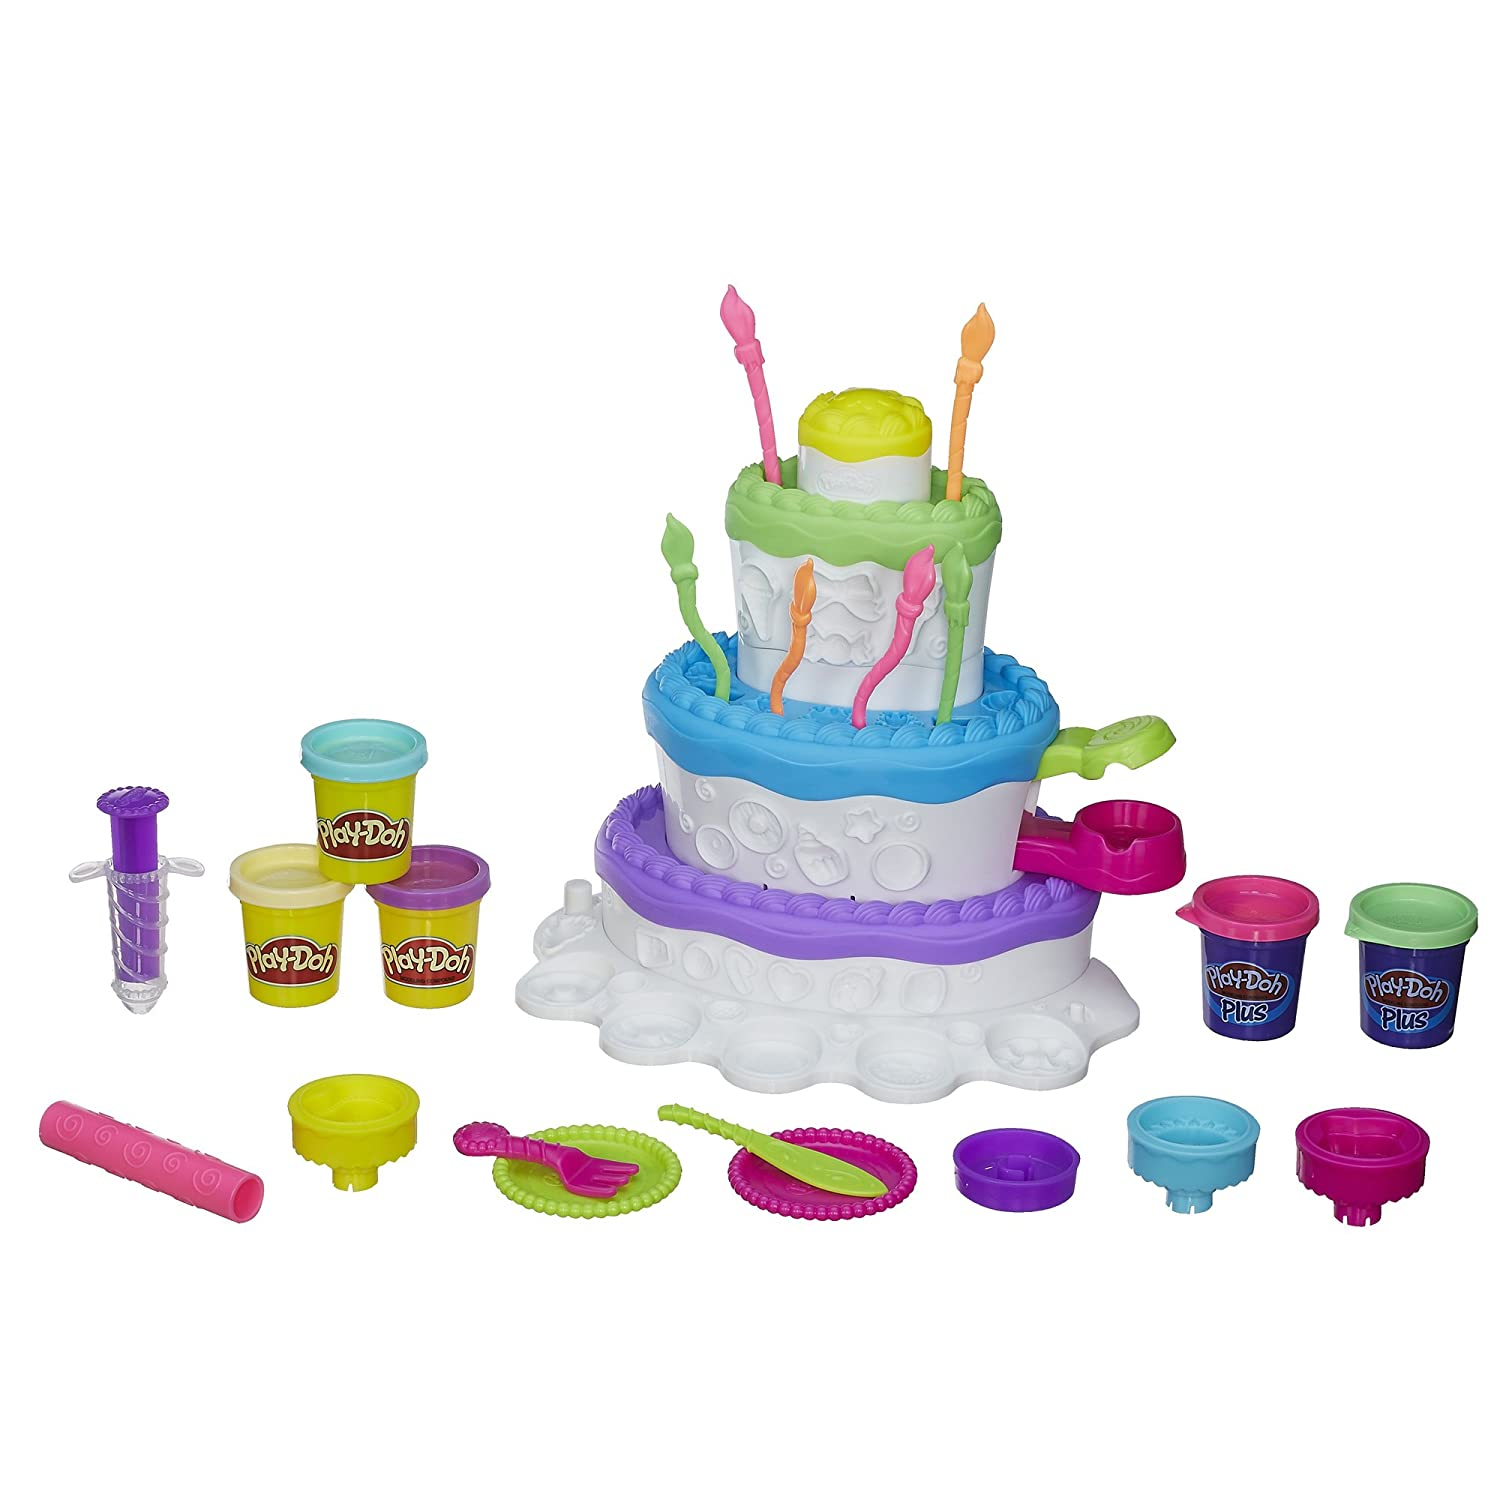 Part Of The Play Doh Cake Mountain Play Set Includes A - Play Doh Küche Müller